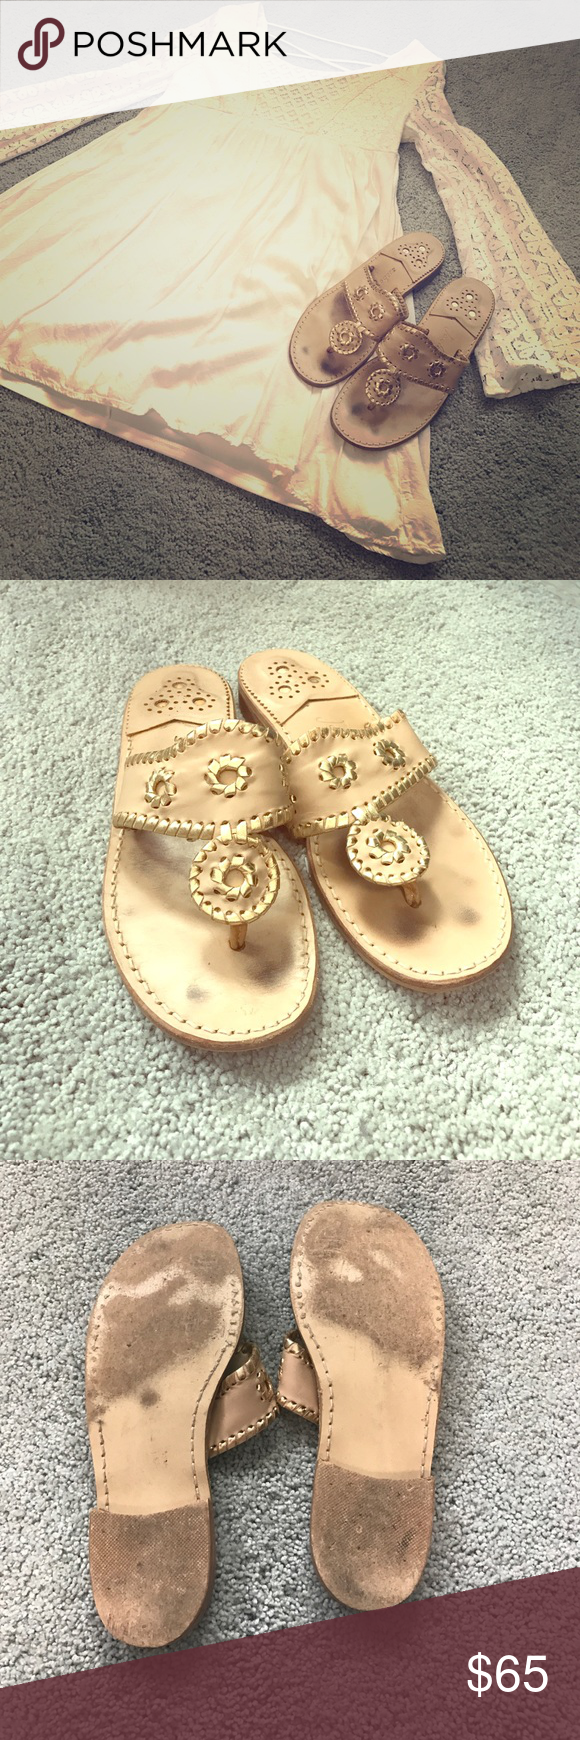 Jack Rogers Sandals ☀️ Nantucket Gold Jack Rogers! Baby Camel/Gold is the color! Gently worn and all wear is pictured (slight toe marks, little wear on heel)! All signs of wear can not even be seen when on - when worn they look brand new! Everything is still in tact! Super cute sandal for spring and summer! Great neutral! EUC, great condition and has lots of wear left! Spring and summer must have! ☀️ Jack Rogers Shoes Sandals